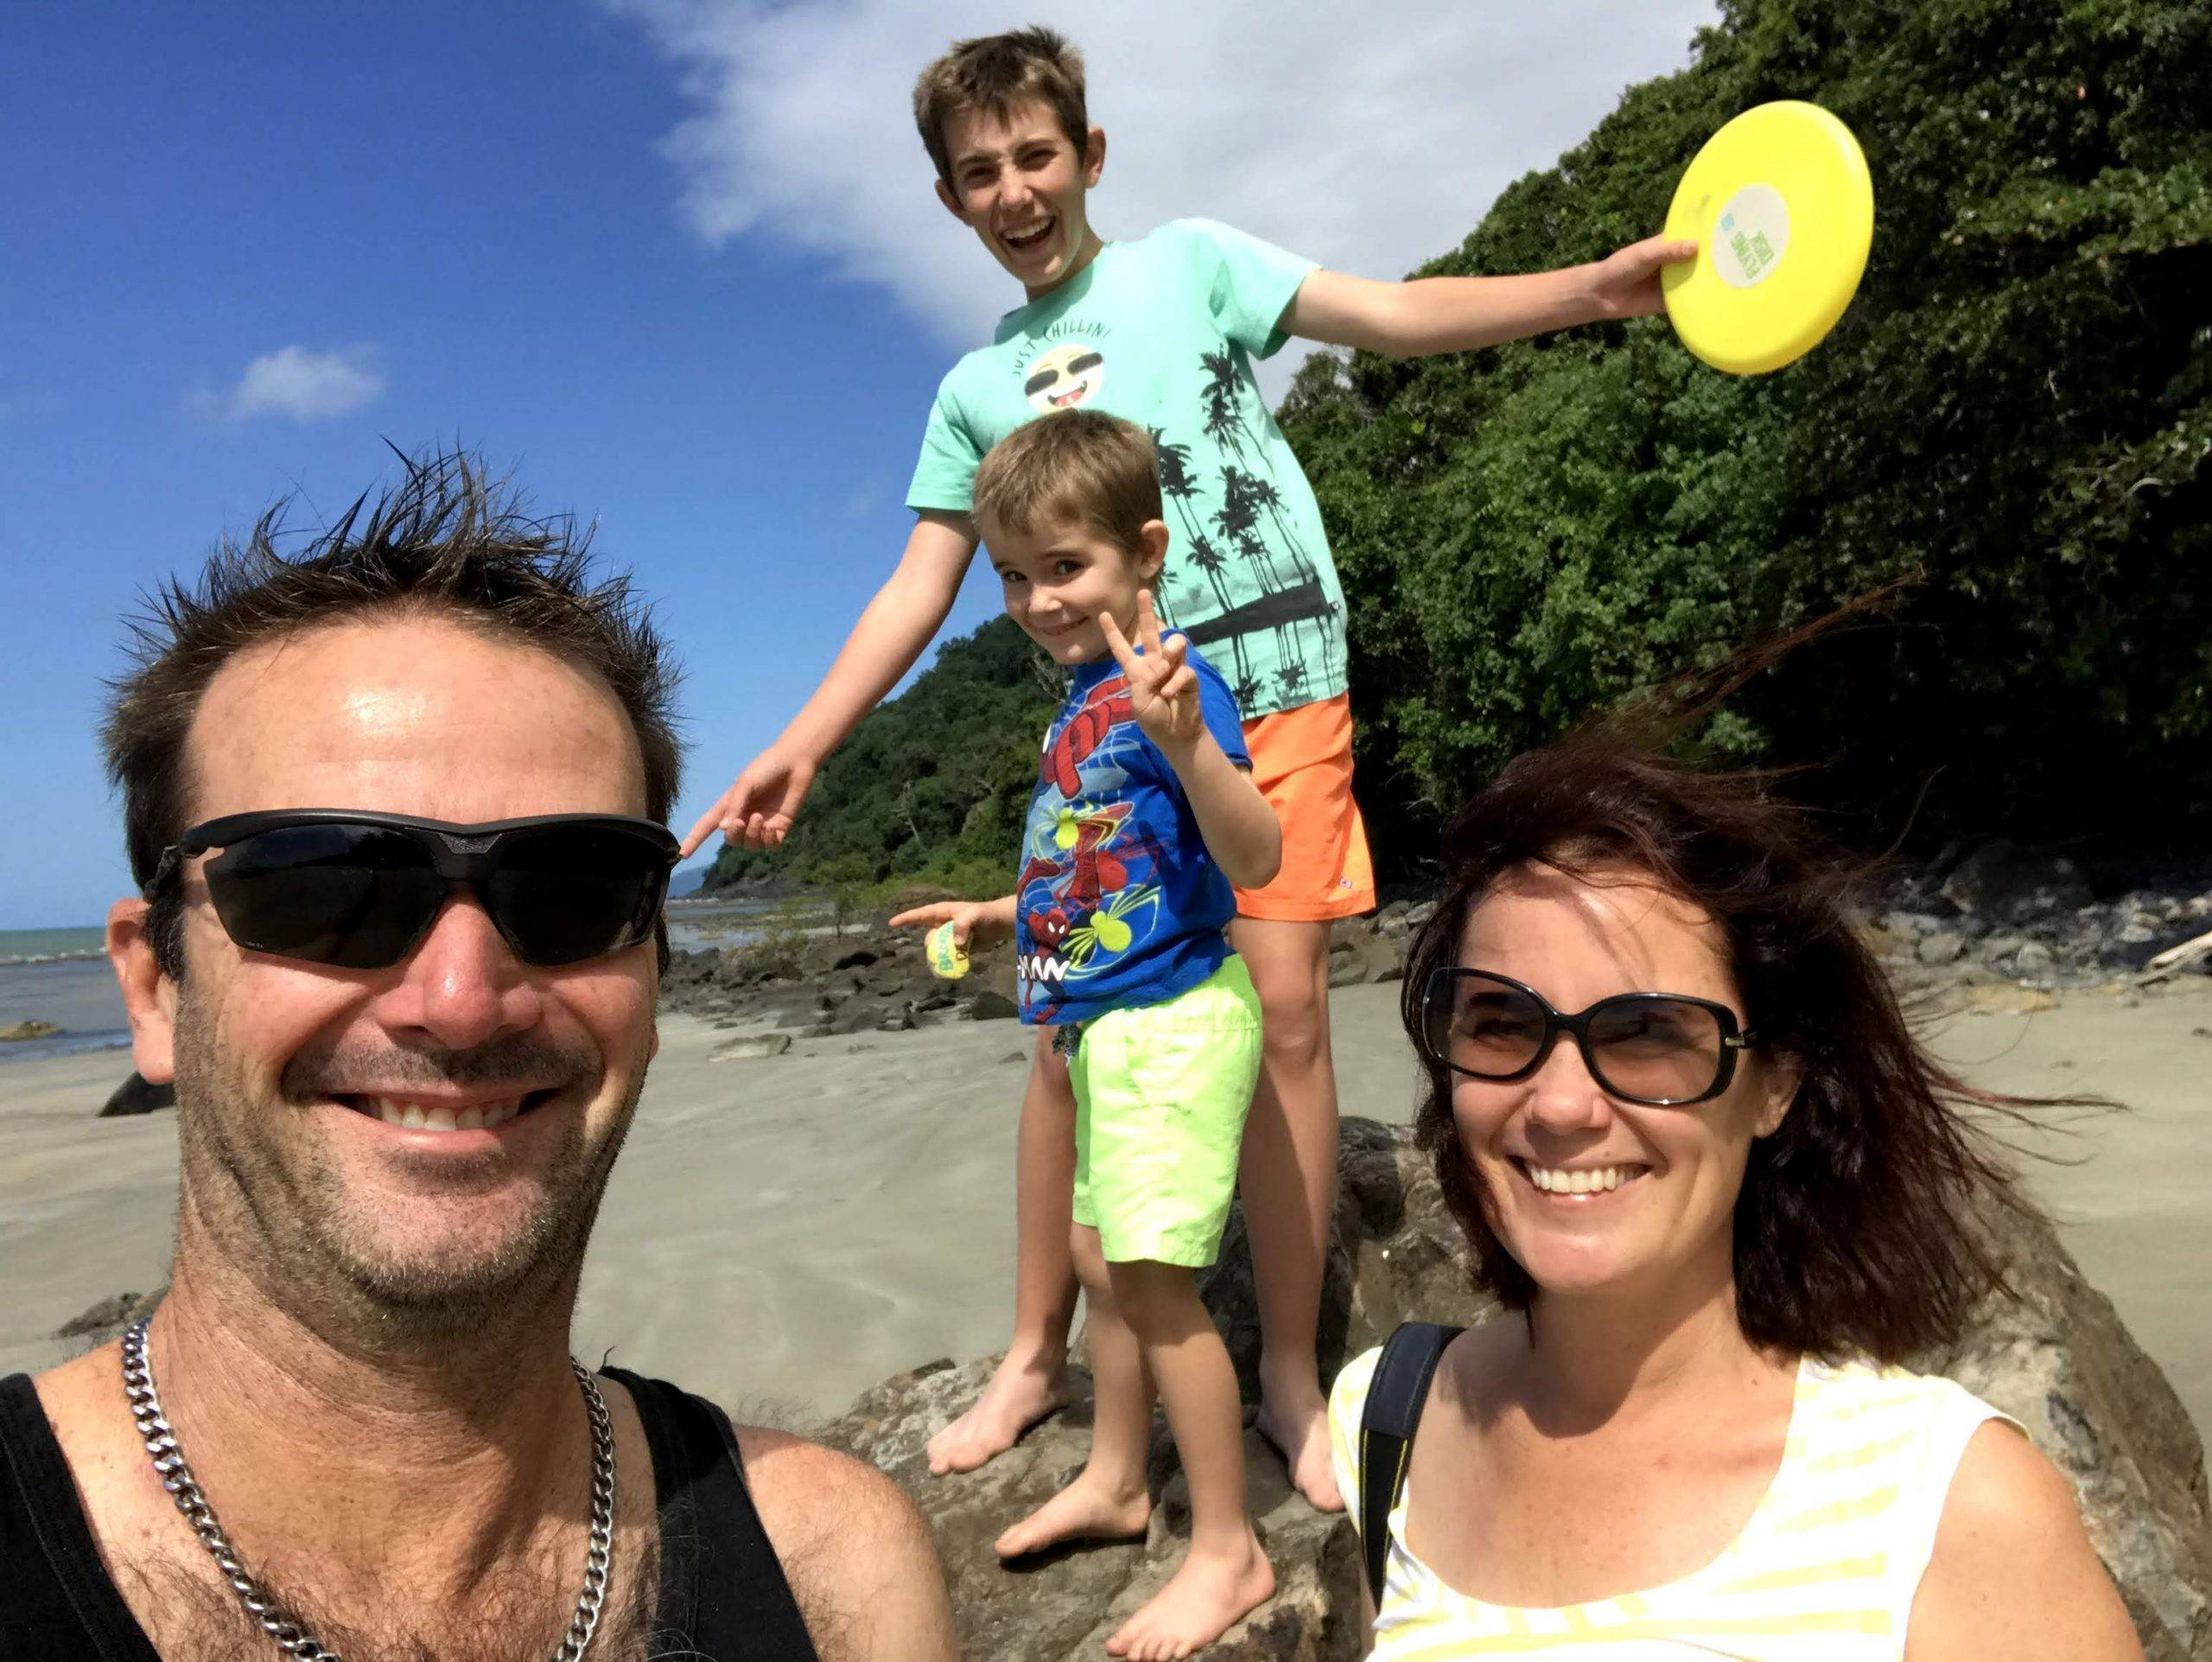 Joel-Farmer-enjoying-some-family-time-while-visiting-the-1300-4-Gardening-Cairns-branch-scaled